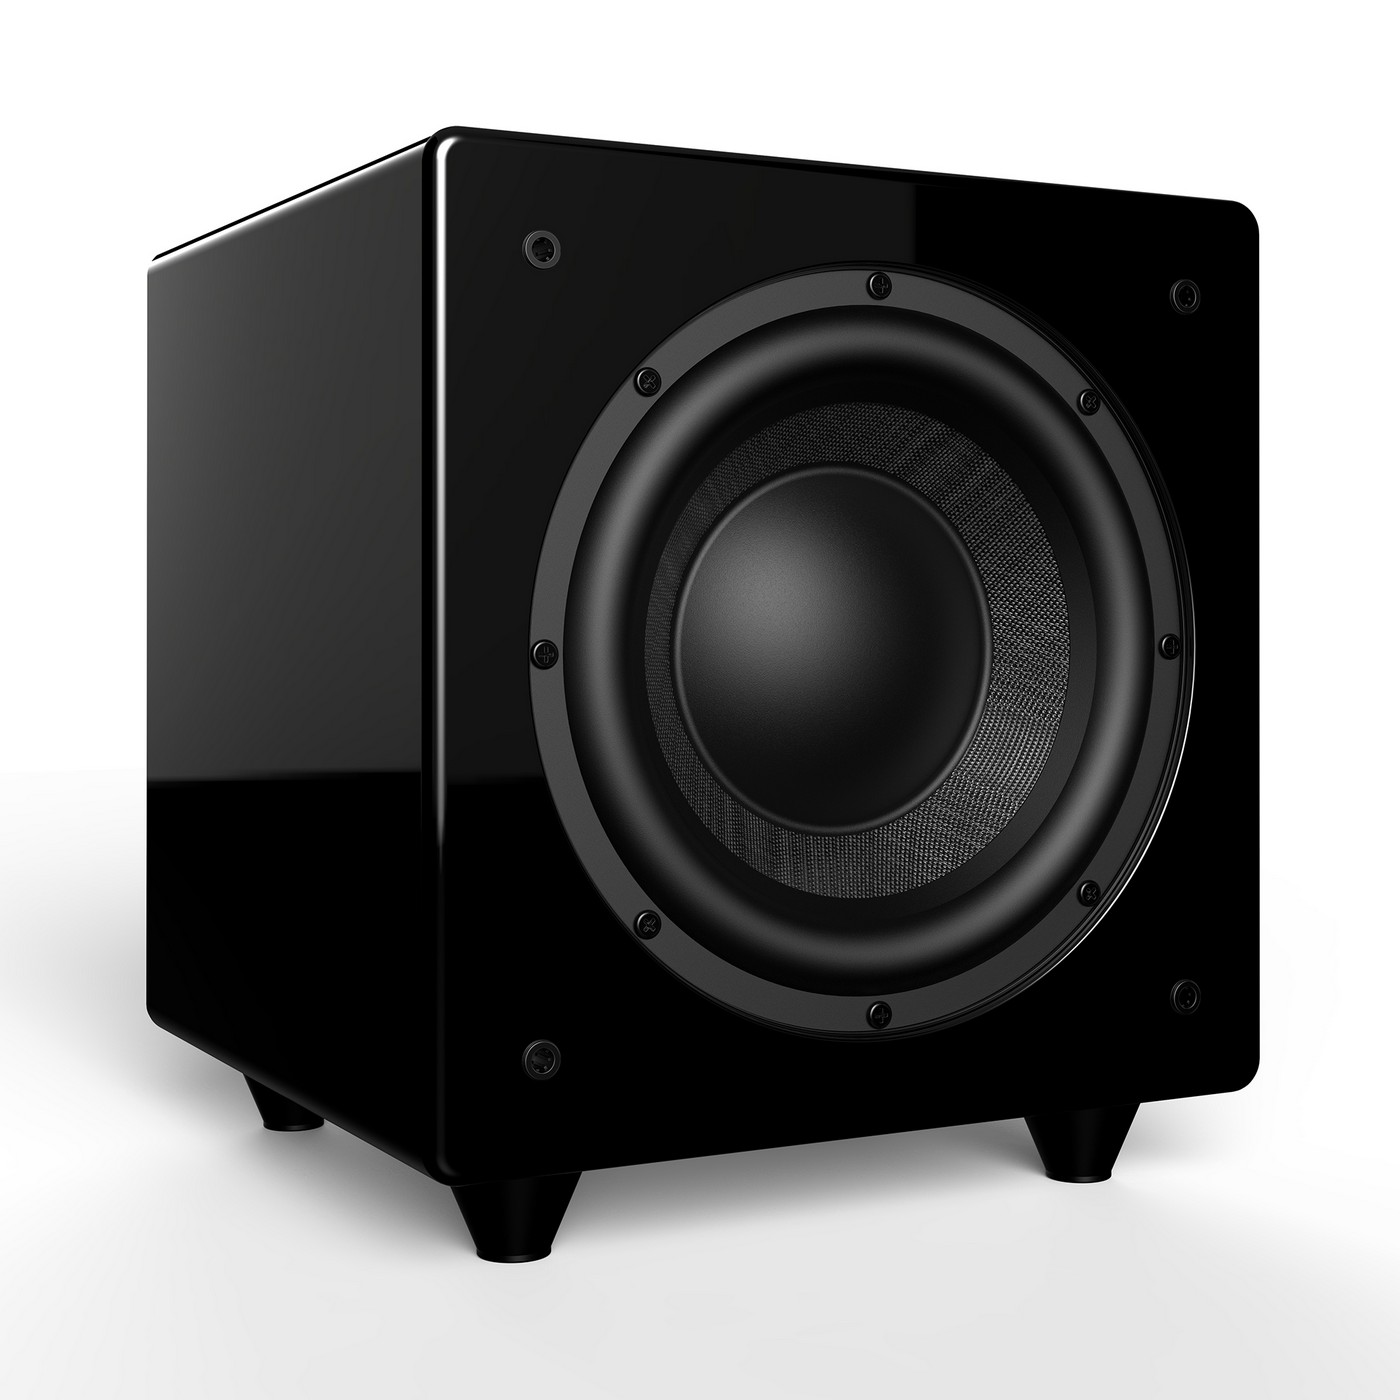 """8"""" Dynamic 300W Powered Subwoofer w/ Active & Passive Woofers, Gold-Plated Inputs - Nero Dual X8"""